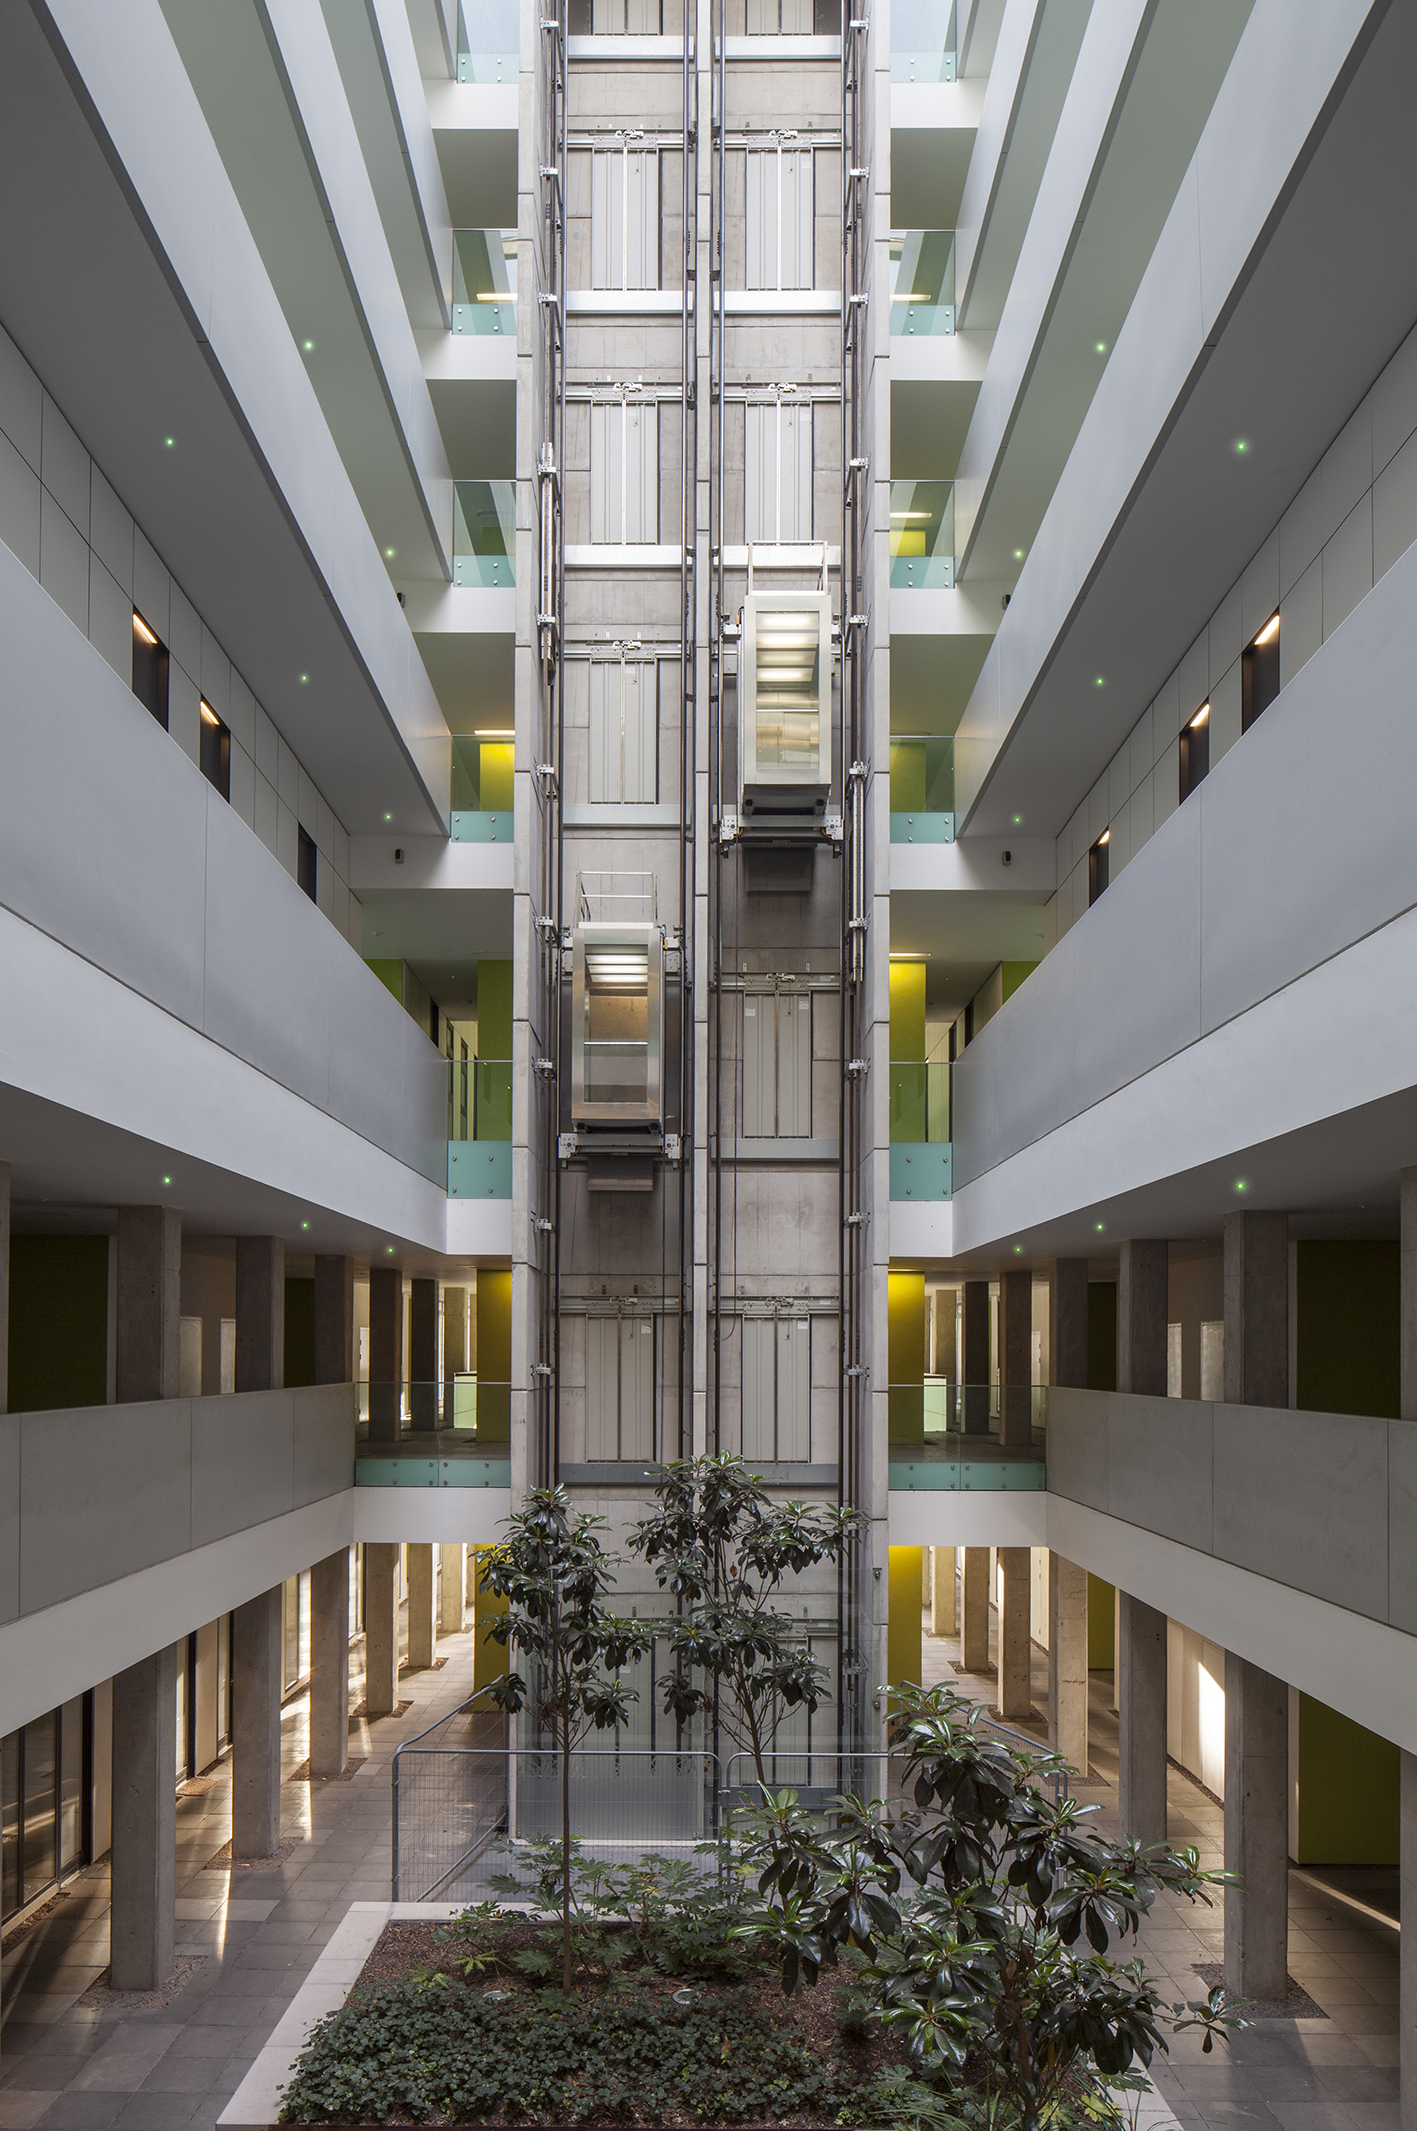 lakeshore-bristol-chooses-goodlight-led-lighting-communal-area-3-sml